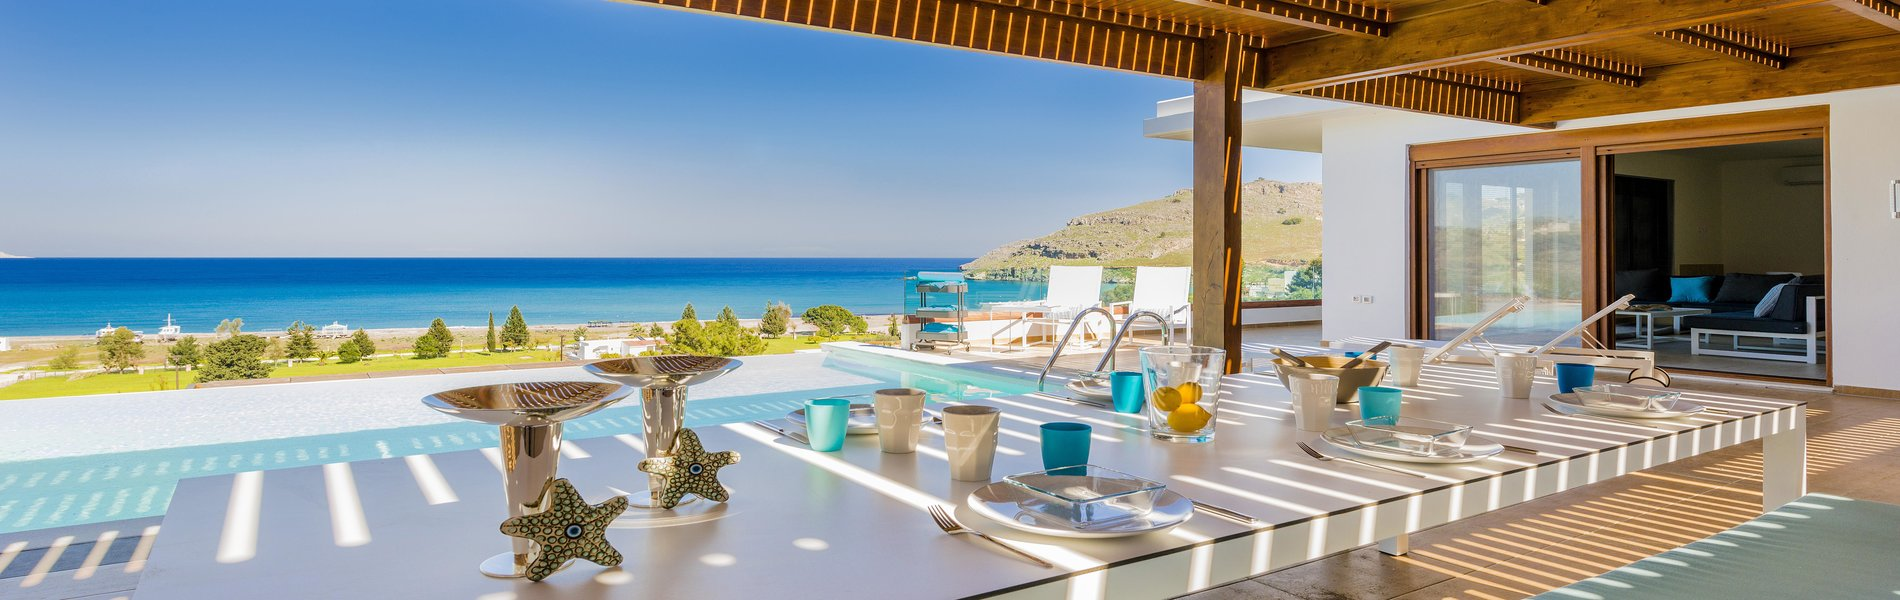 villa-santorini-cyclades-greece-pool-luxury-aleria-kinney=smith-mykanos-corfu-crete-halkidiki-apartments-town-house-beach-real-estate-rightmove